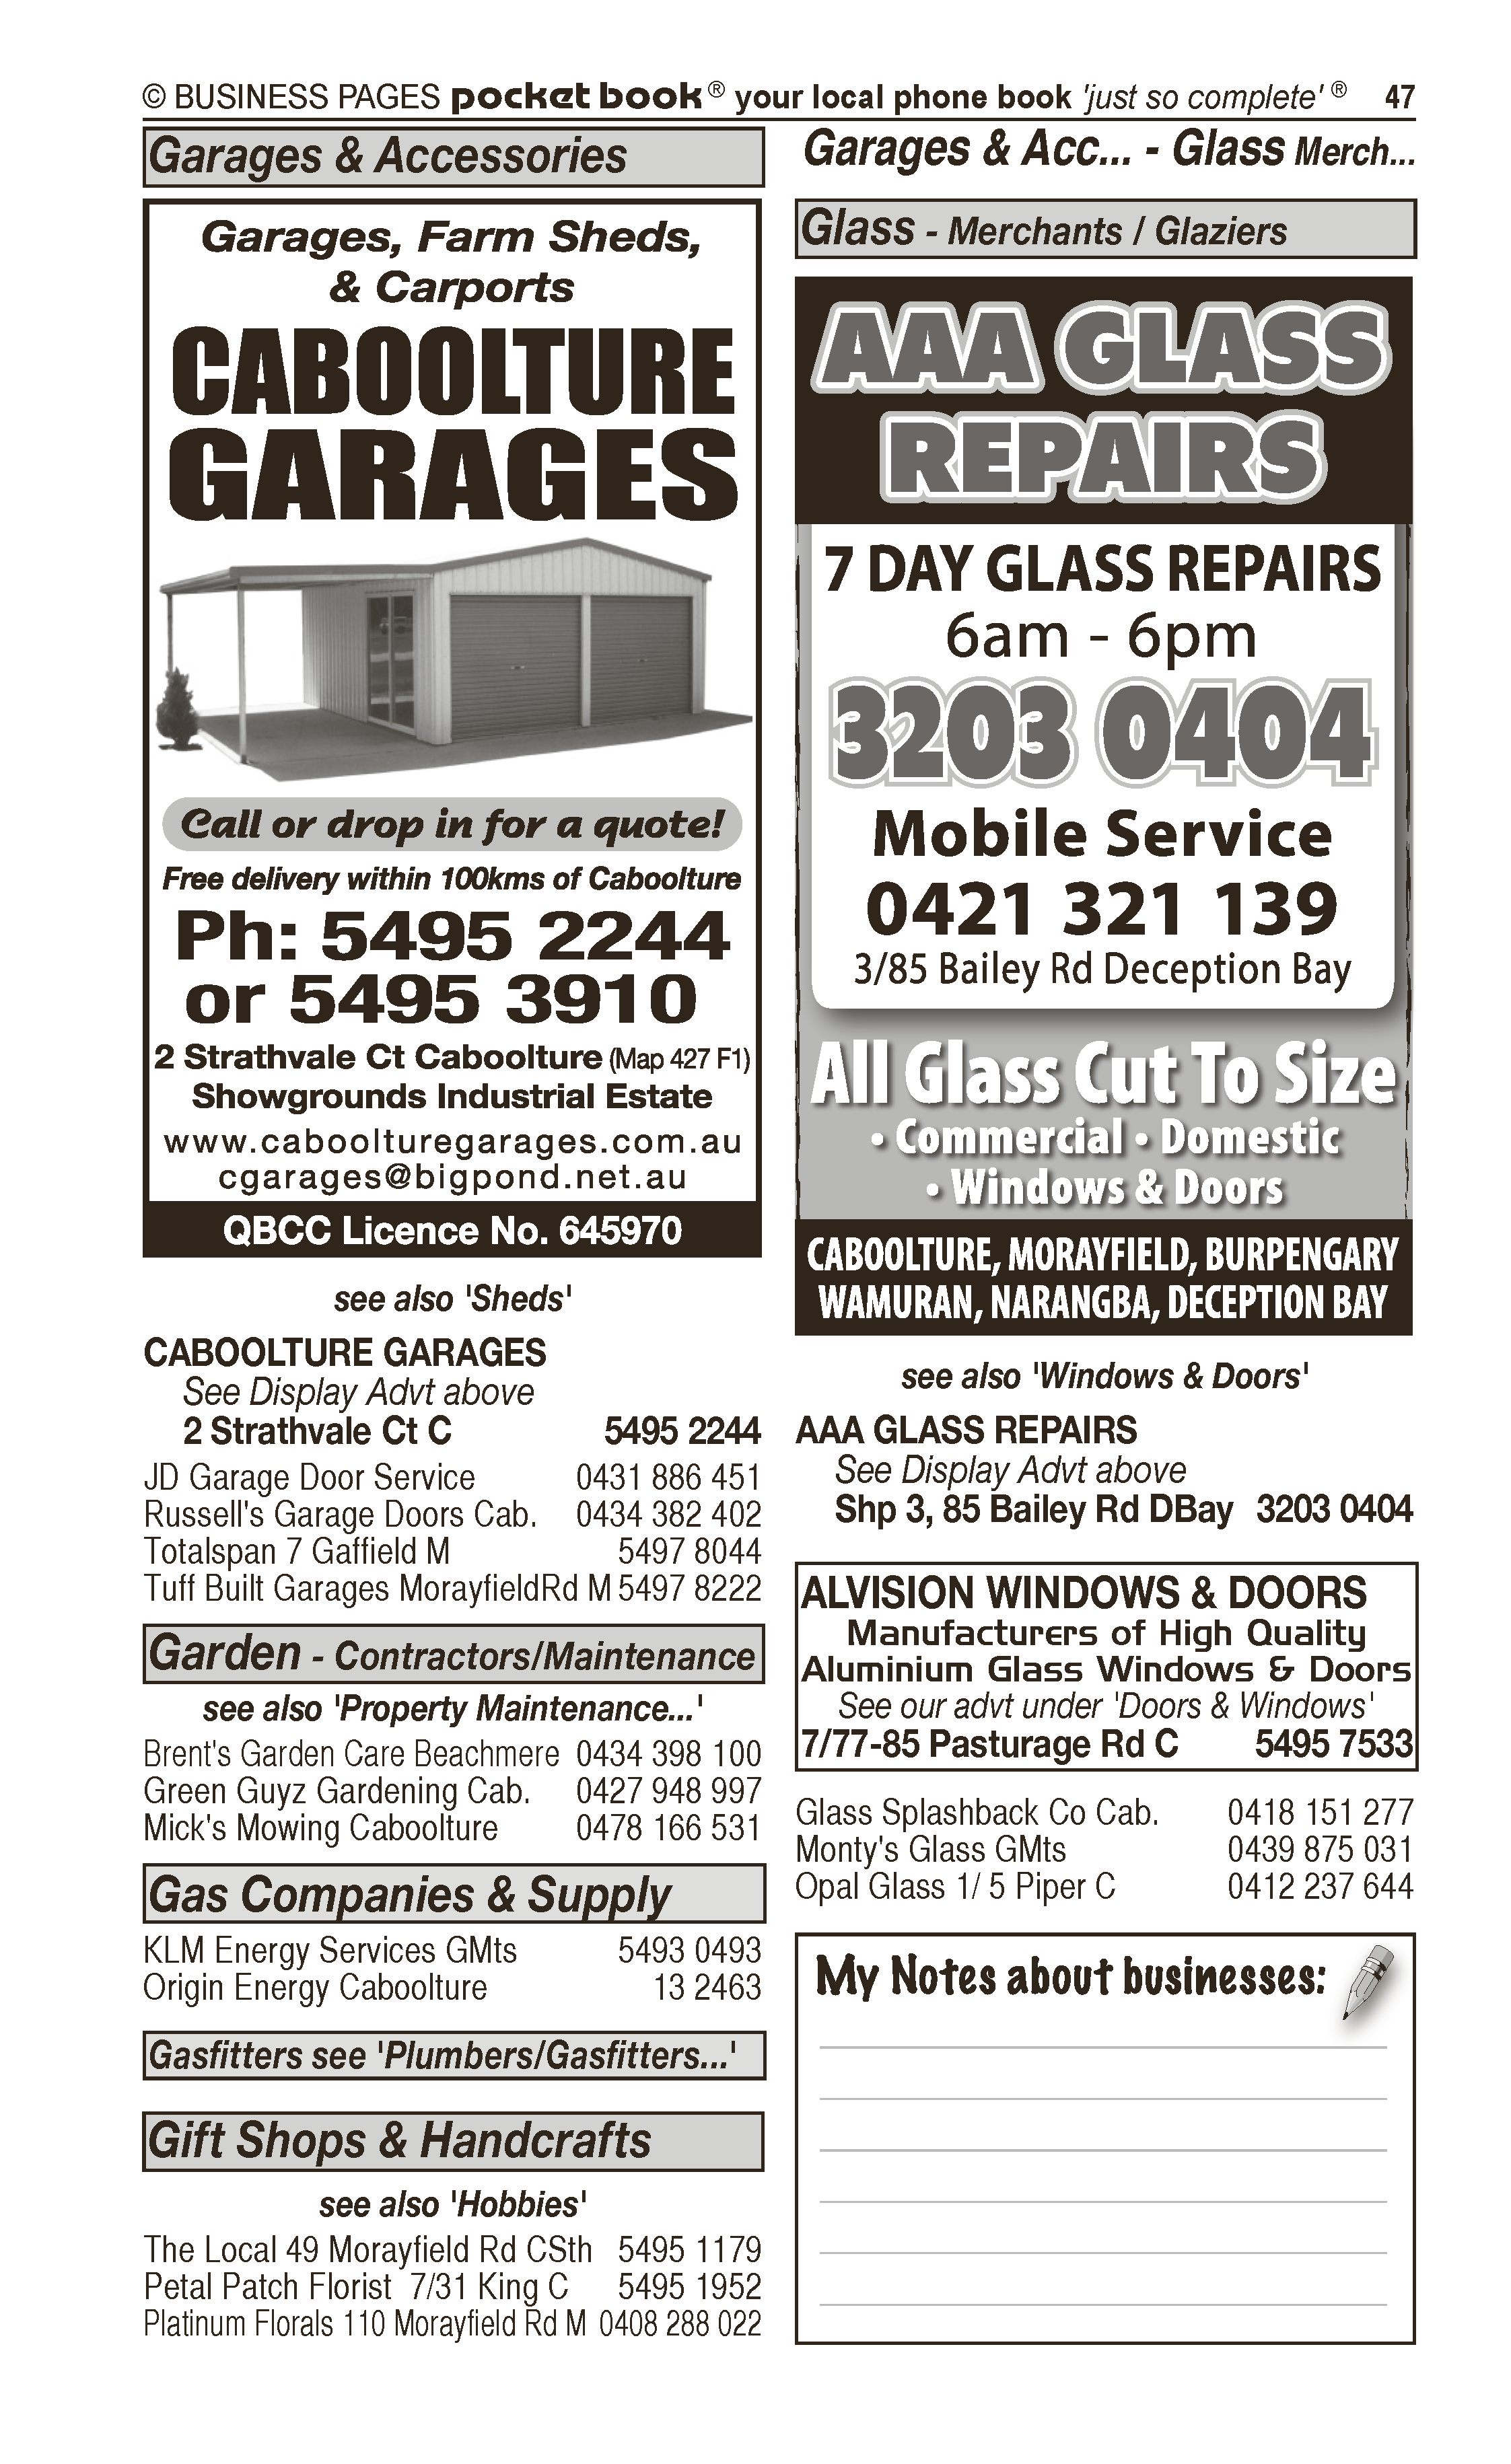 Caboolture Auto Electrics & Air Conditioning | Motor – Electrical in Caboolture | PBezy Pocket Books local directories - page 47